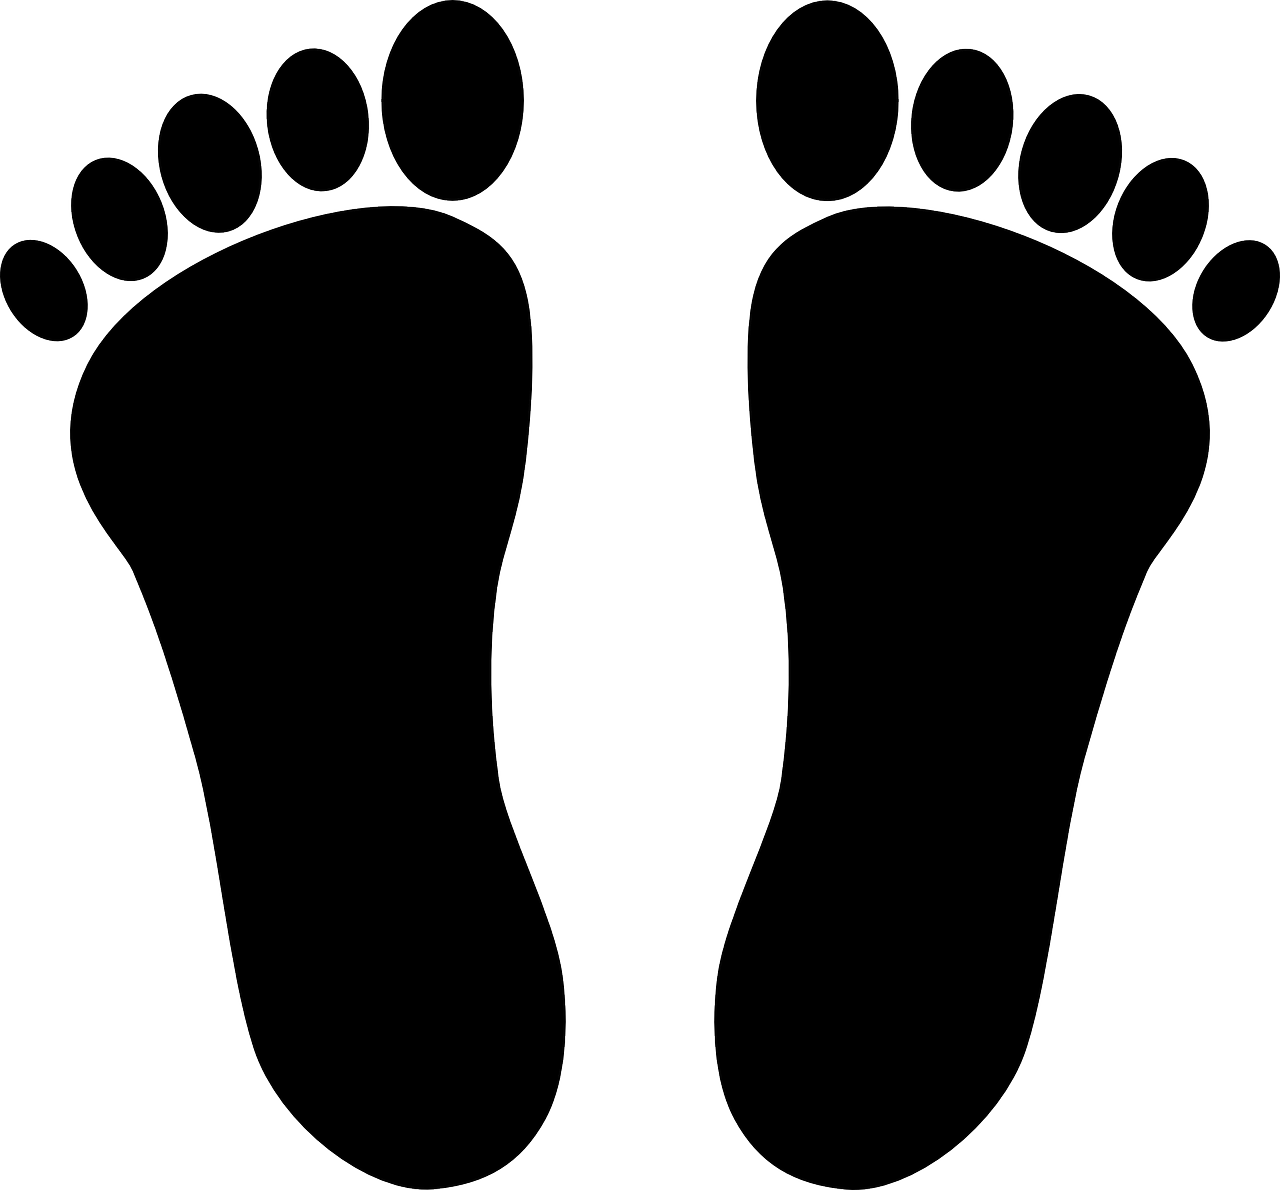 Podiatry clipart jpg black and white library Podiatrist clipart clipart images gallery for free download ... jpg black and white library